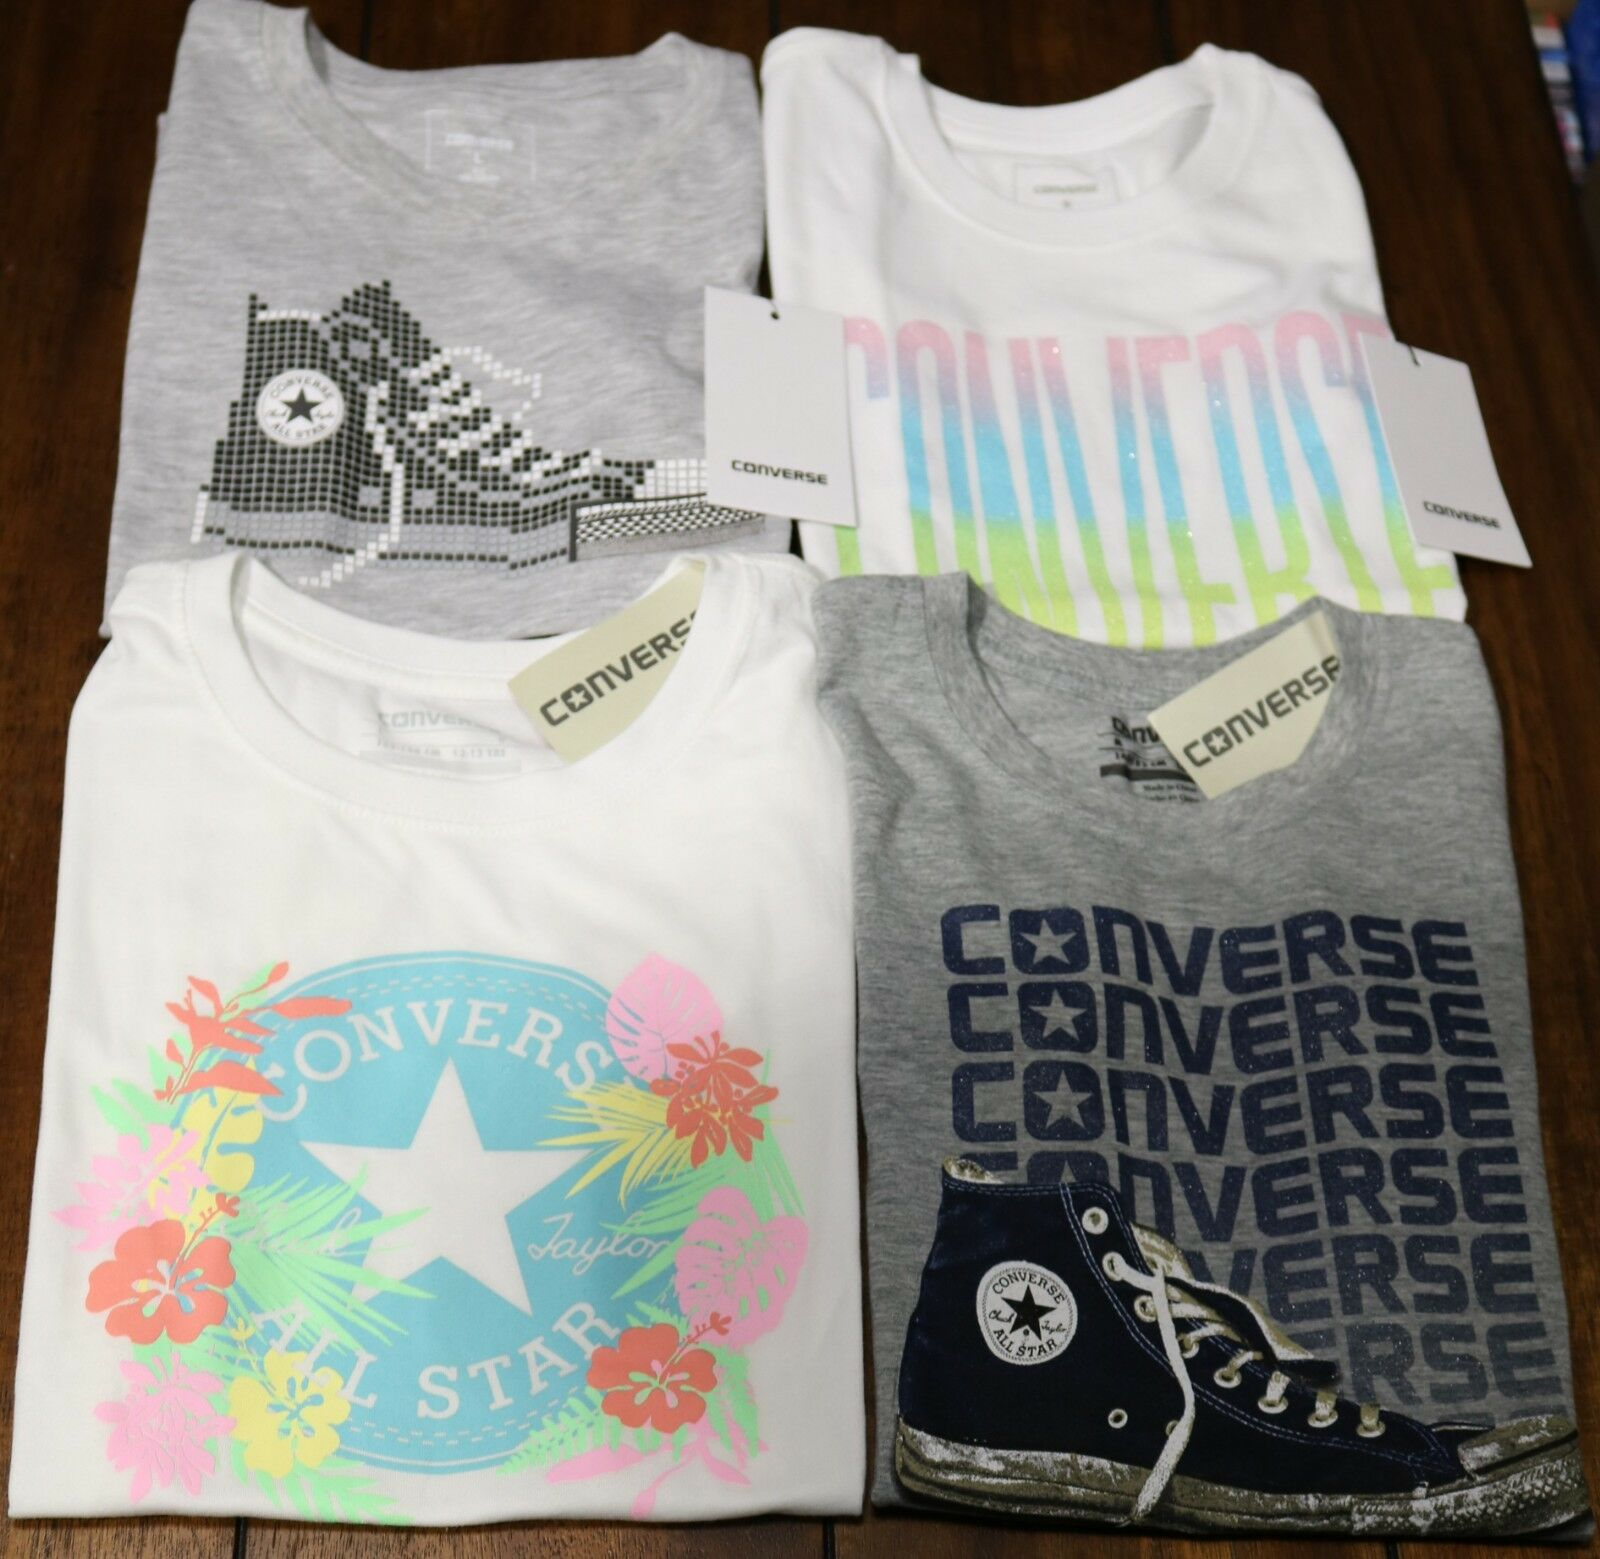 Details about Converse Chuck Taylor T Shirts Grafic Tee Girls Youth S, M, L, XL